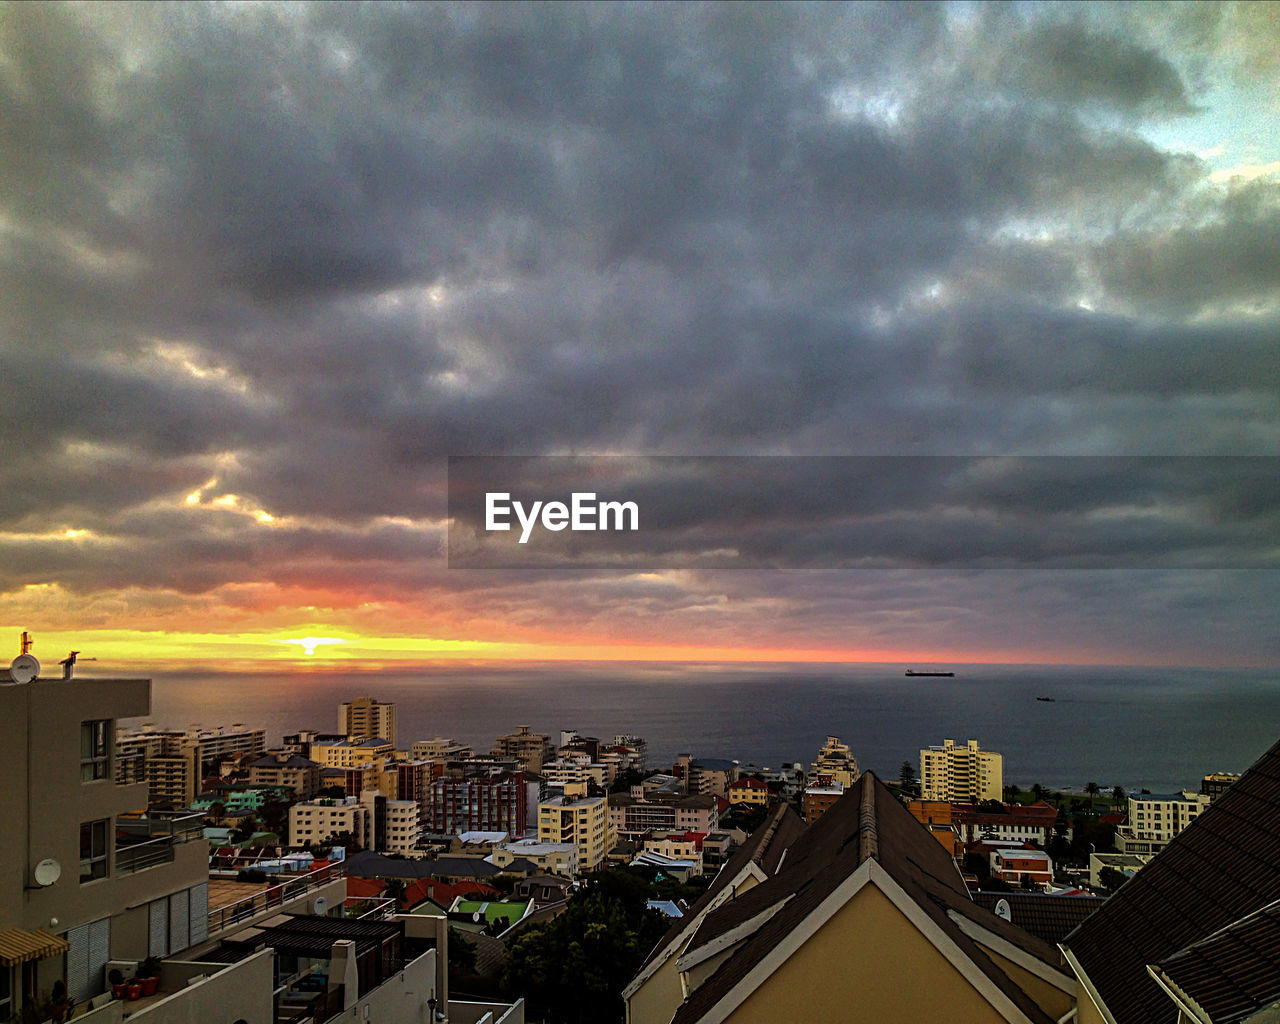 architecture, building exterior, cloud - sky, built structure, sky, city, cityscape, sunset, skyscraper, no people, city life, sea, outdoors, residential building, nature, storm cloud, horizon over water, beauty in nature, travel destinations, modern, scenics, water, urban skyline, day